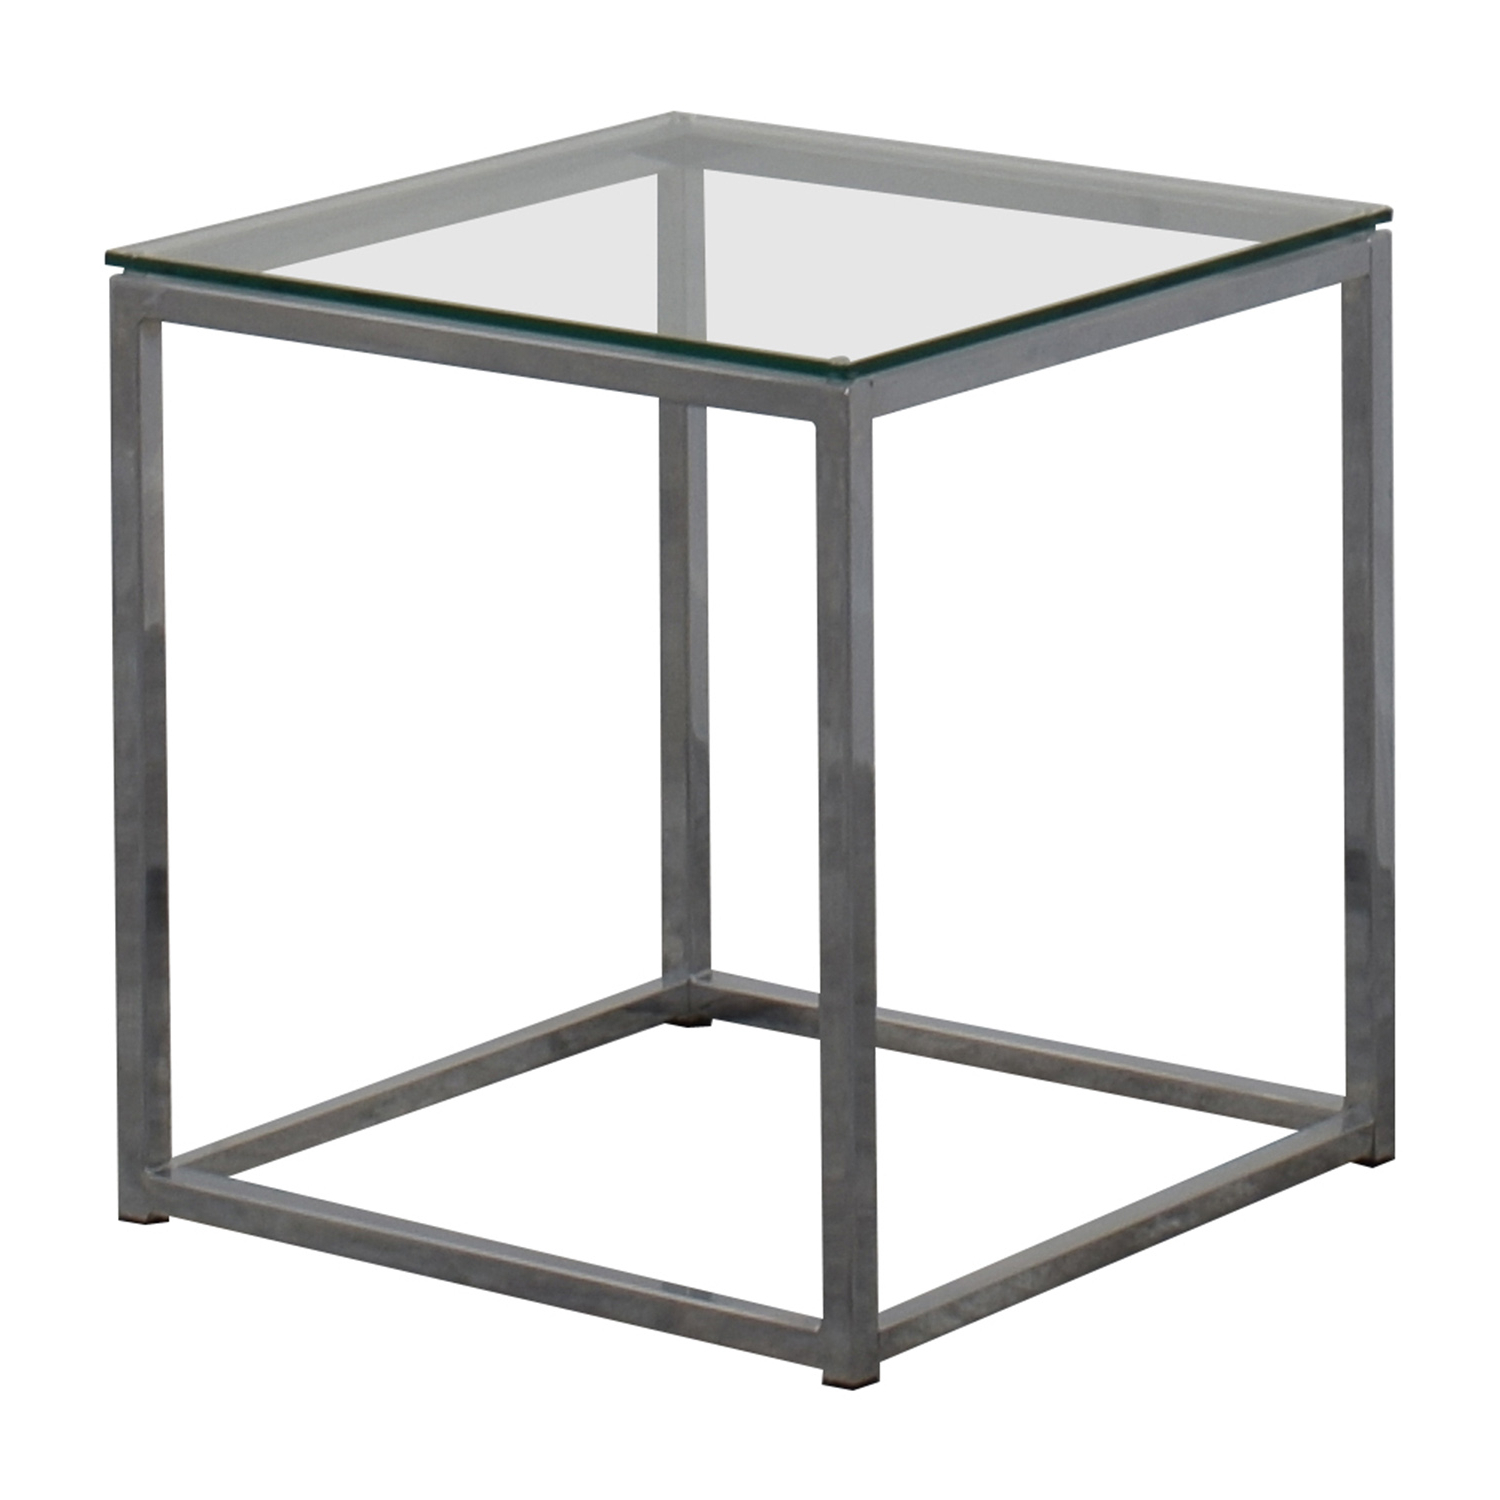 [%80% Off – Cb2 Cb2 Smart Glass Top Side Table / Tables Throughout Well Liked Smart Glass Top Coffee Tables|Smart Glass Top Coffee Tables Inside Most Popular 80% Off – Cb2 Cb2 Smart Glass Top Side Table / Tables|Best And Newest Smart Glass Top Coffee Tables Pertaining To 80% Off – Cb2 Cb2 Smart Glass Top Side Table / Tables|Well Known 80% Off – Cb2 Cb2 Smart Glass Top Side Table / Tables Throughout Smart Glass Top Coffee Tables%] (View 2 of 20)